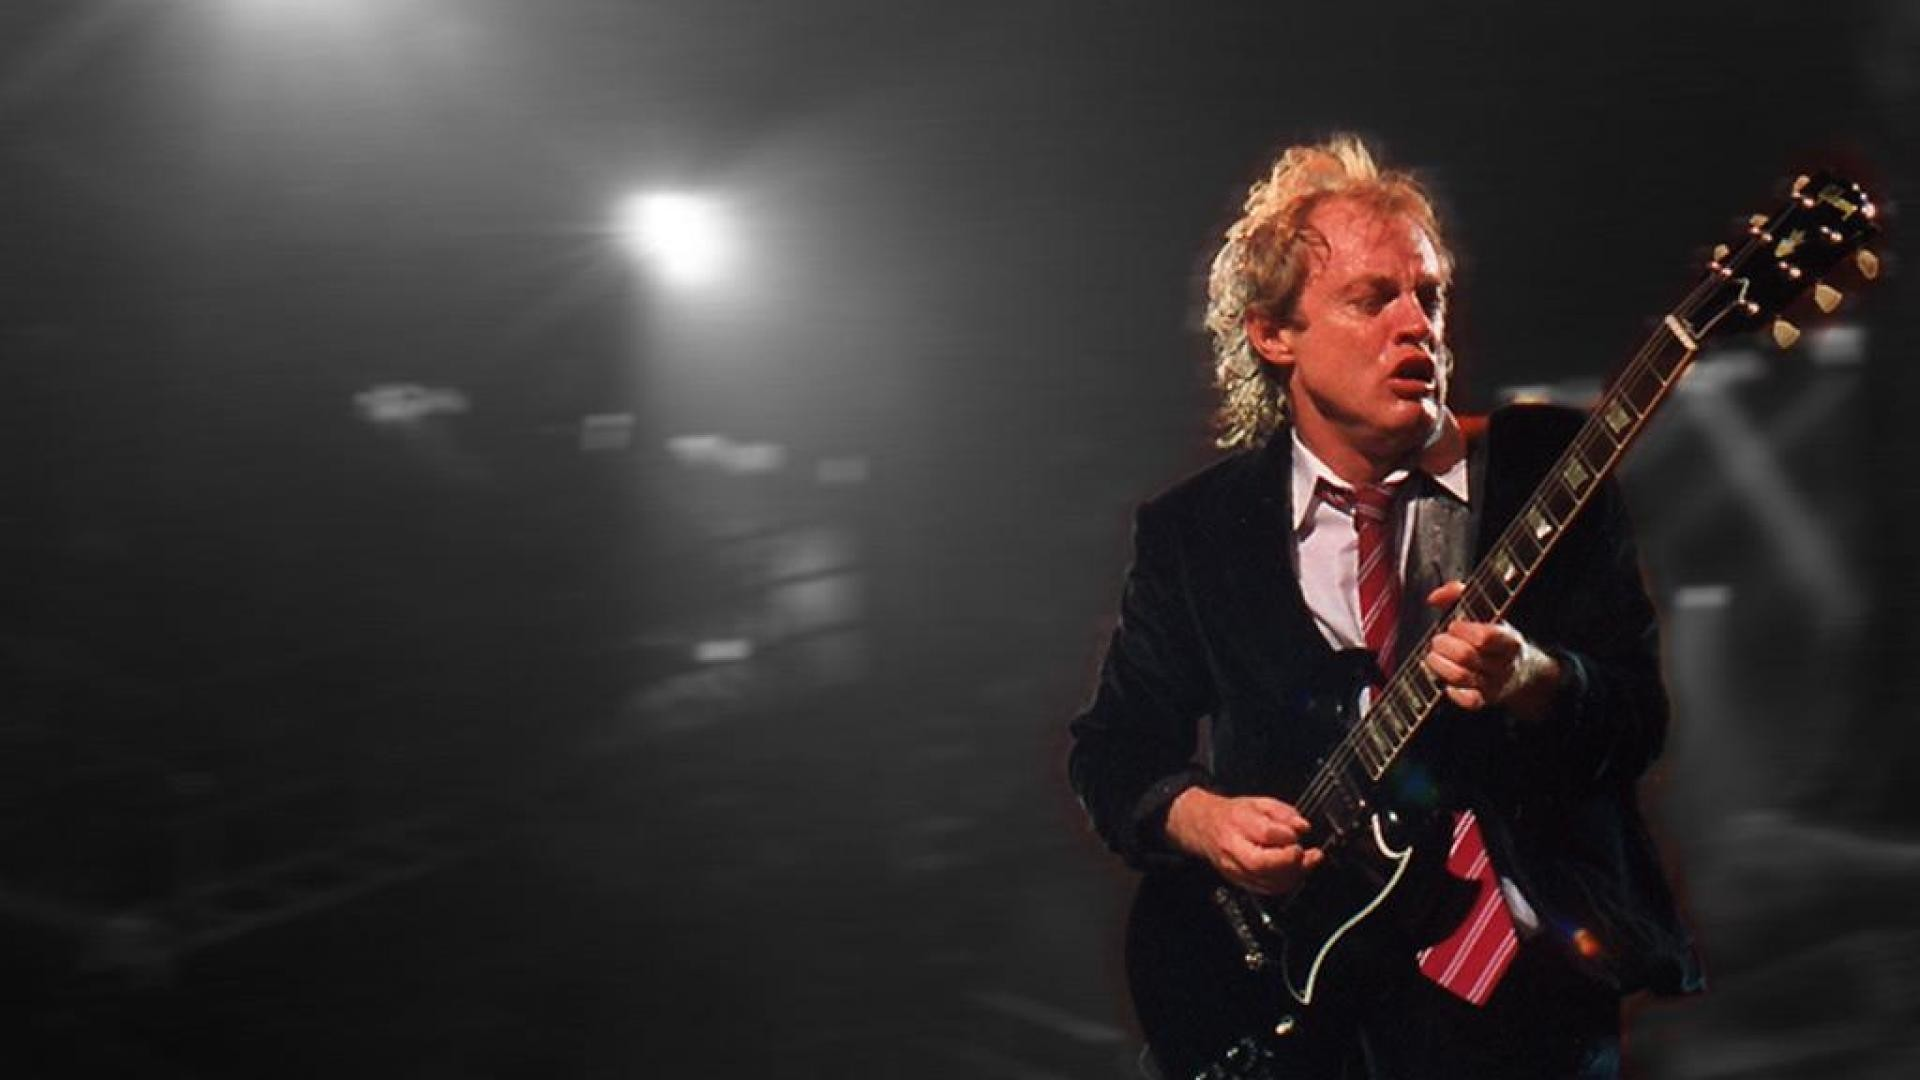 3d Wallpaper Parallax Free Angus Young Hd Wallpaper 63 Images